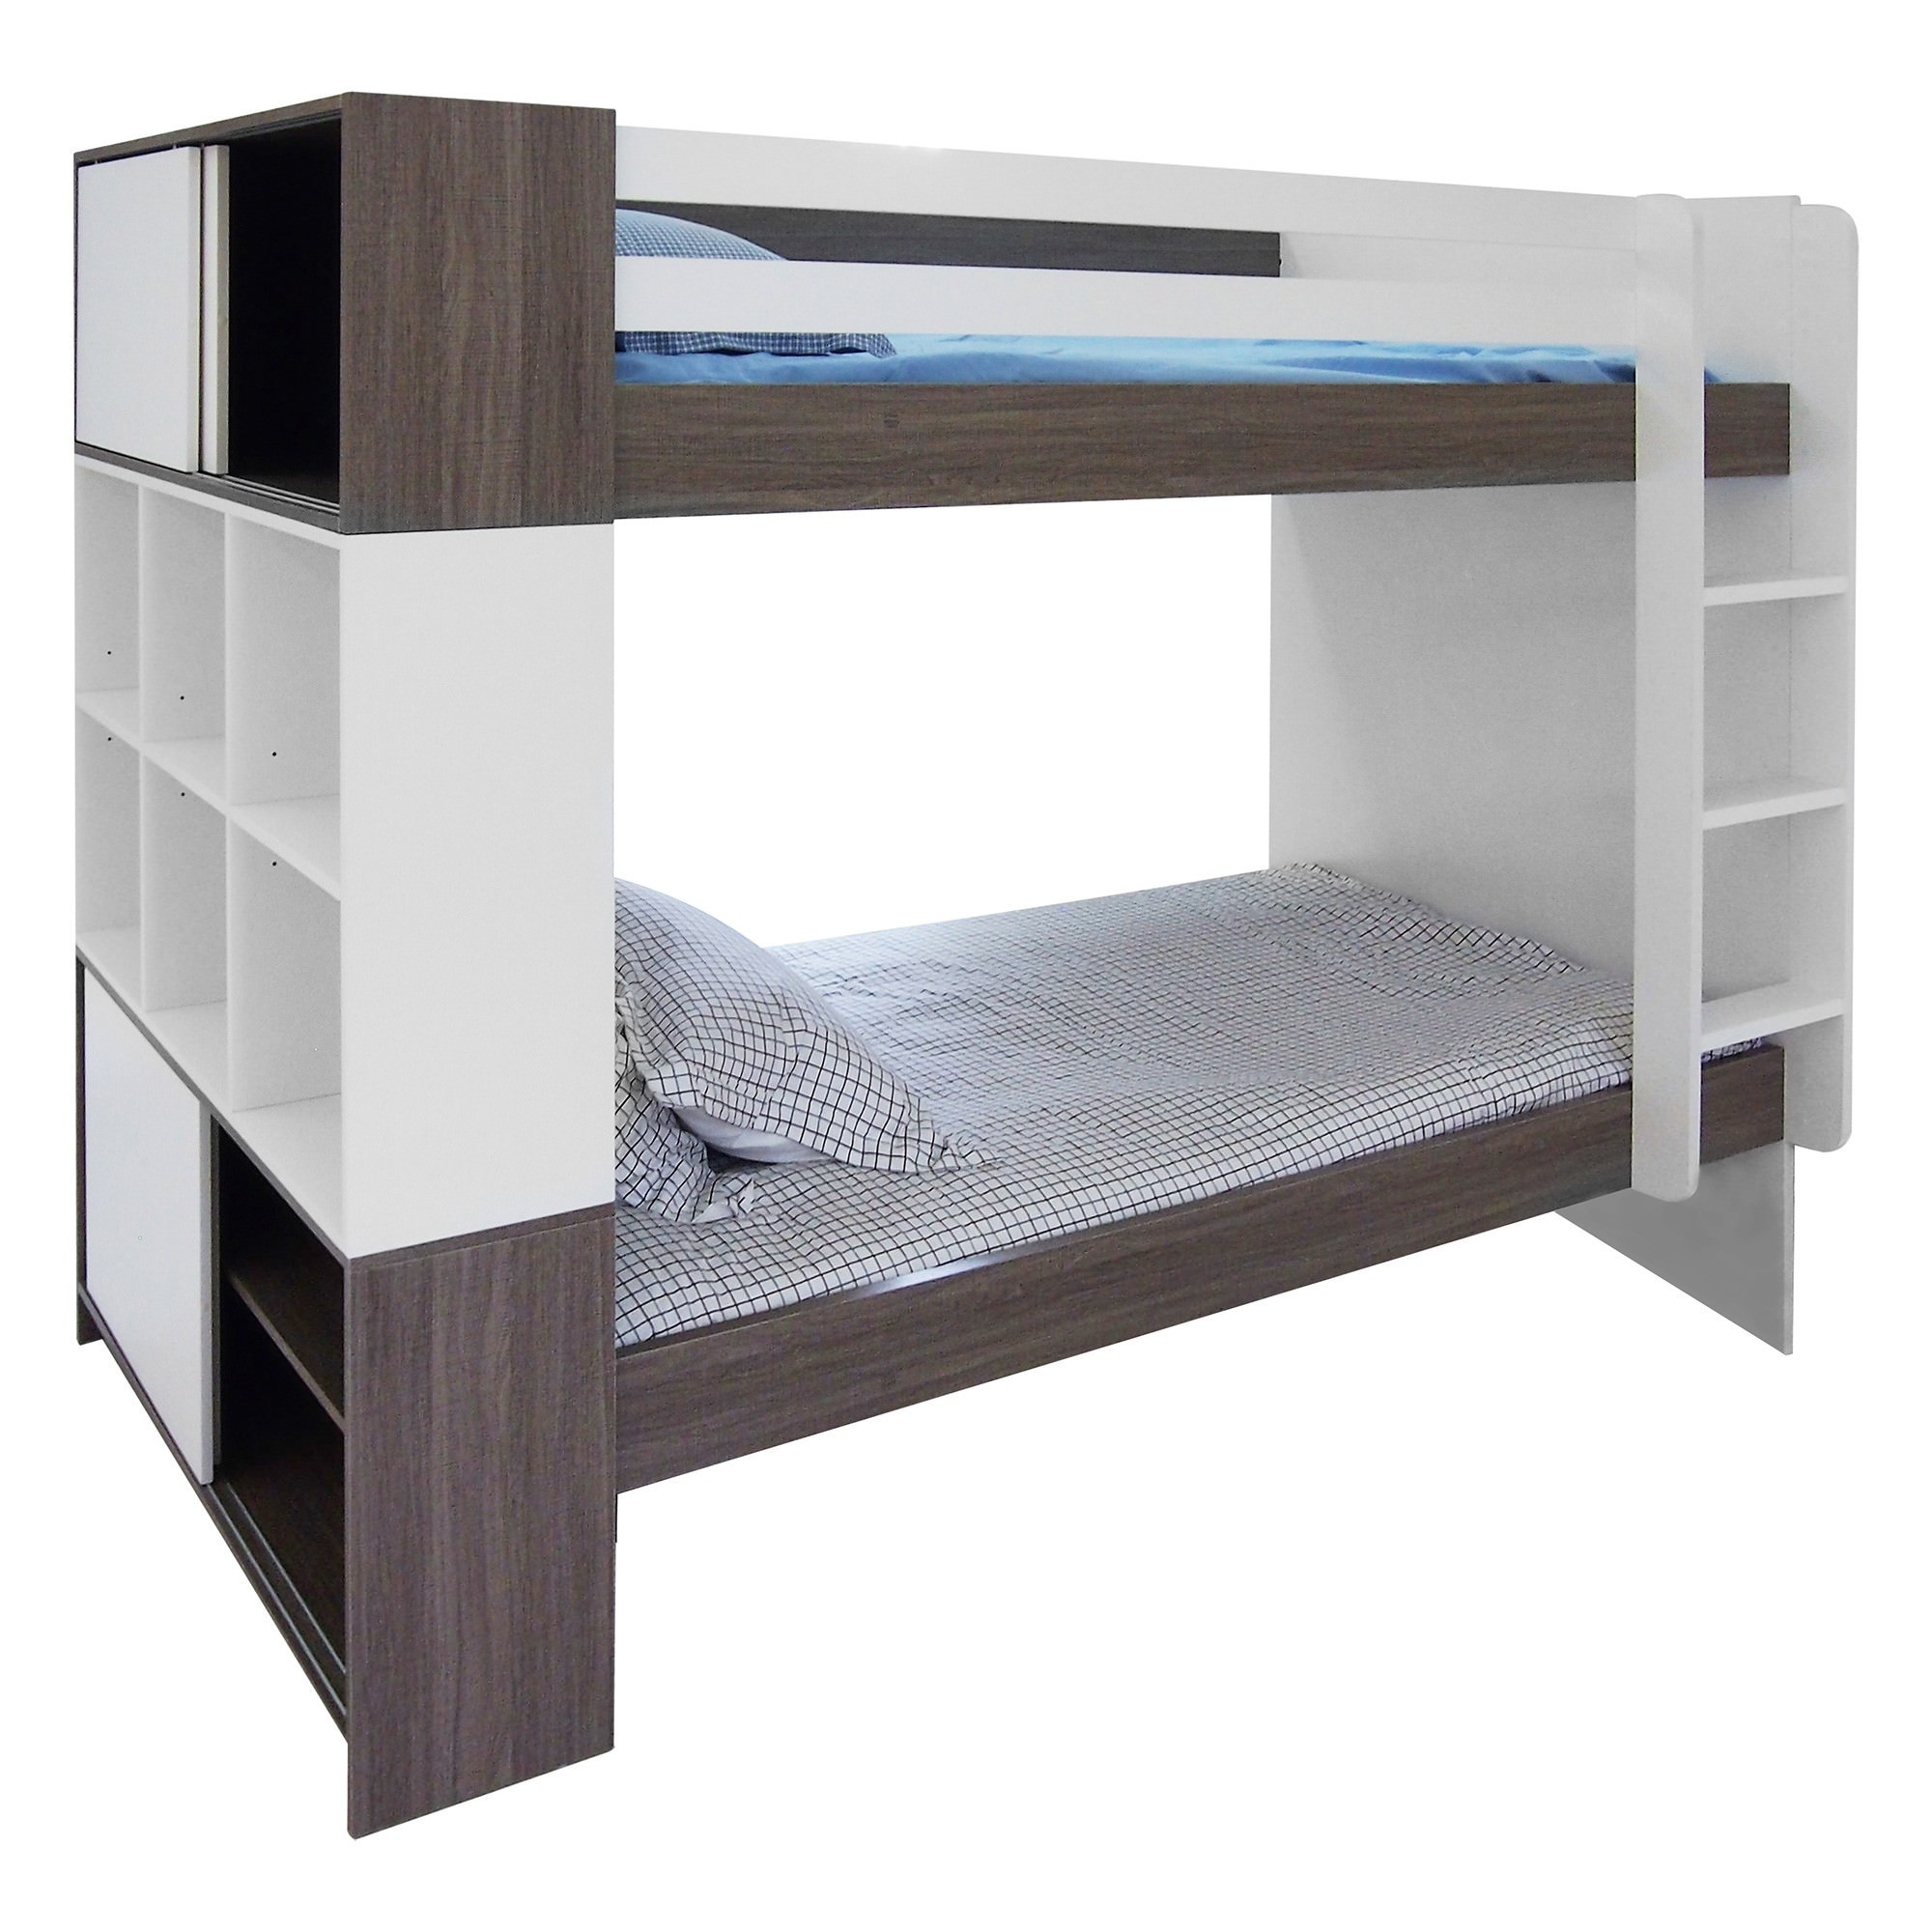 Kube Bunk Bed with Storage Shelf, Single